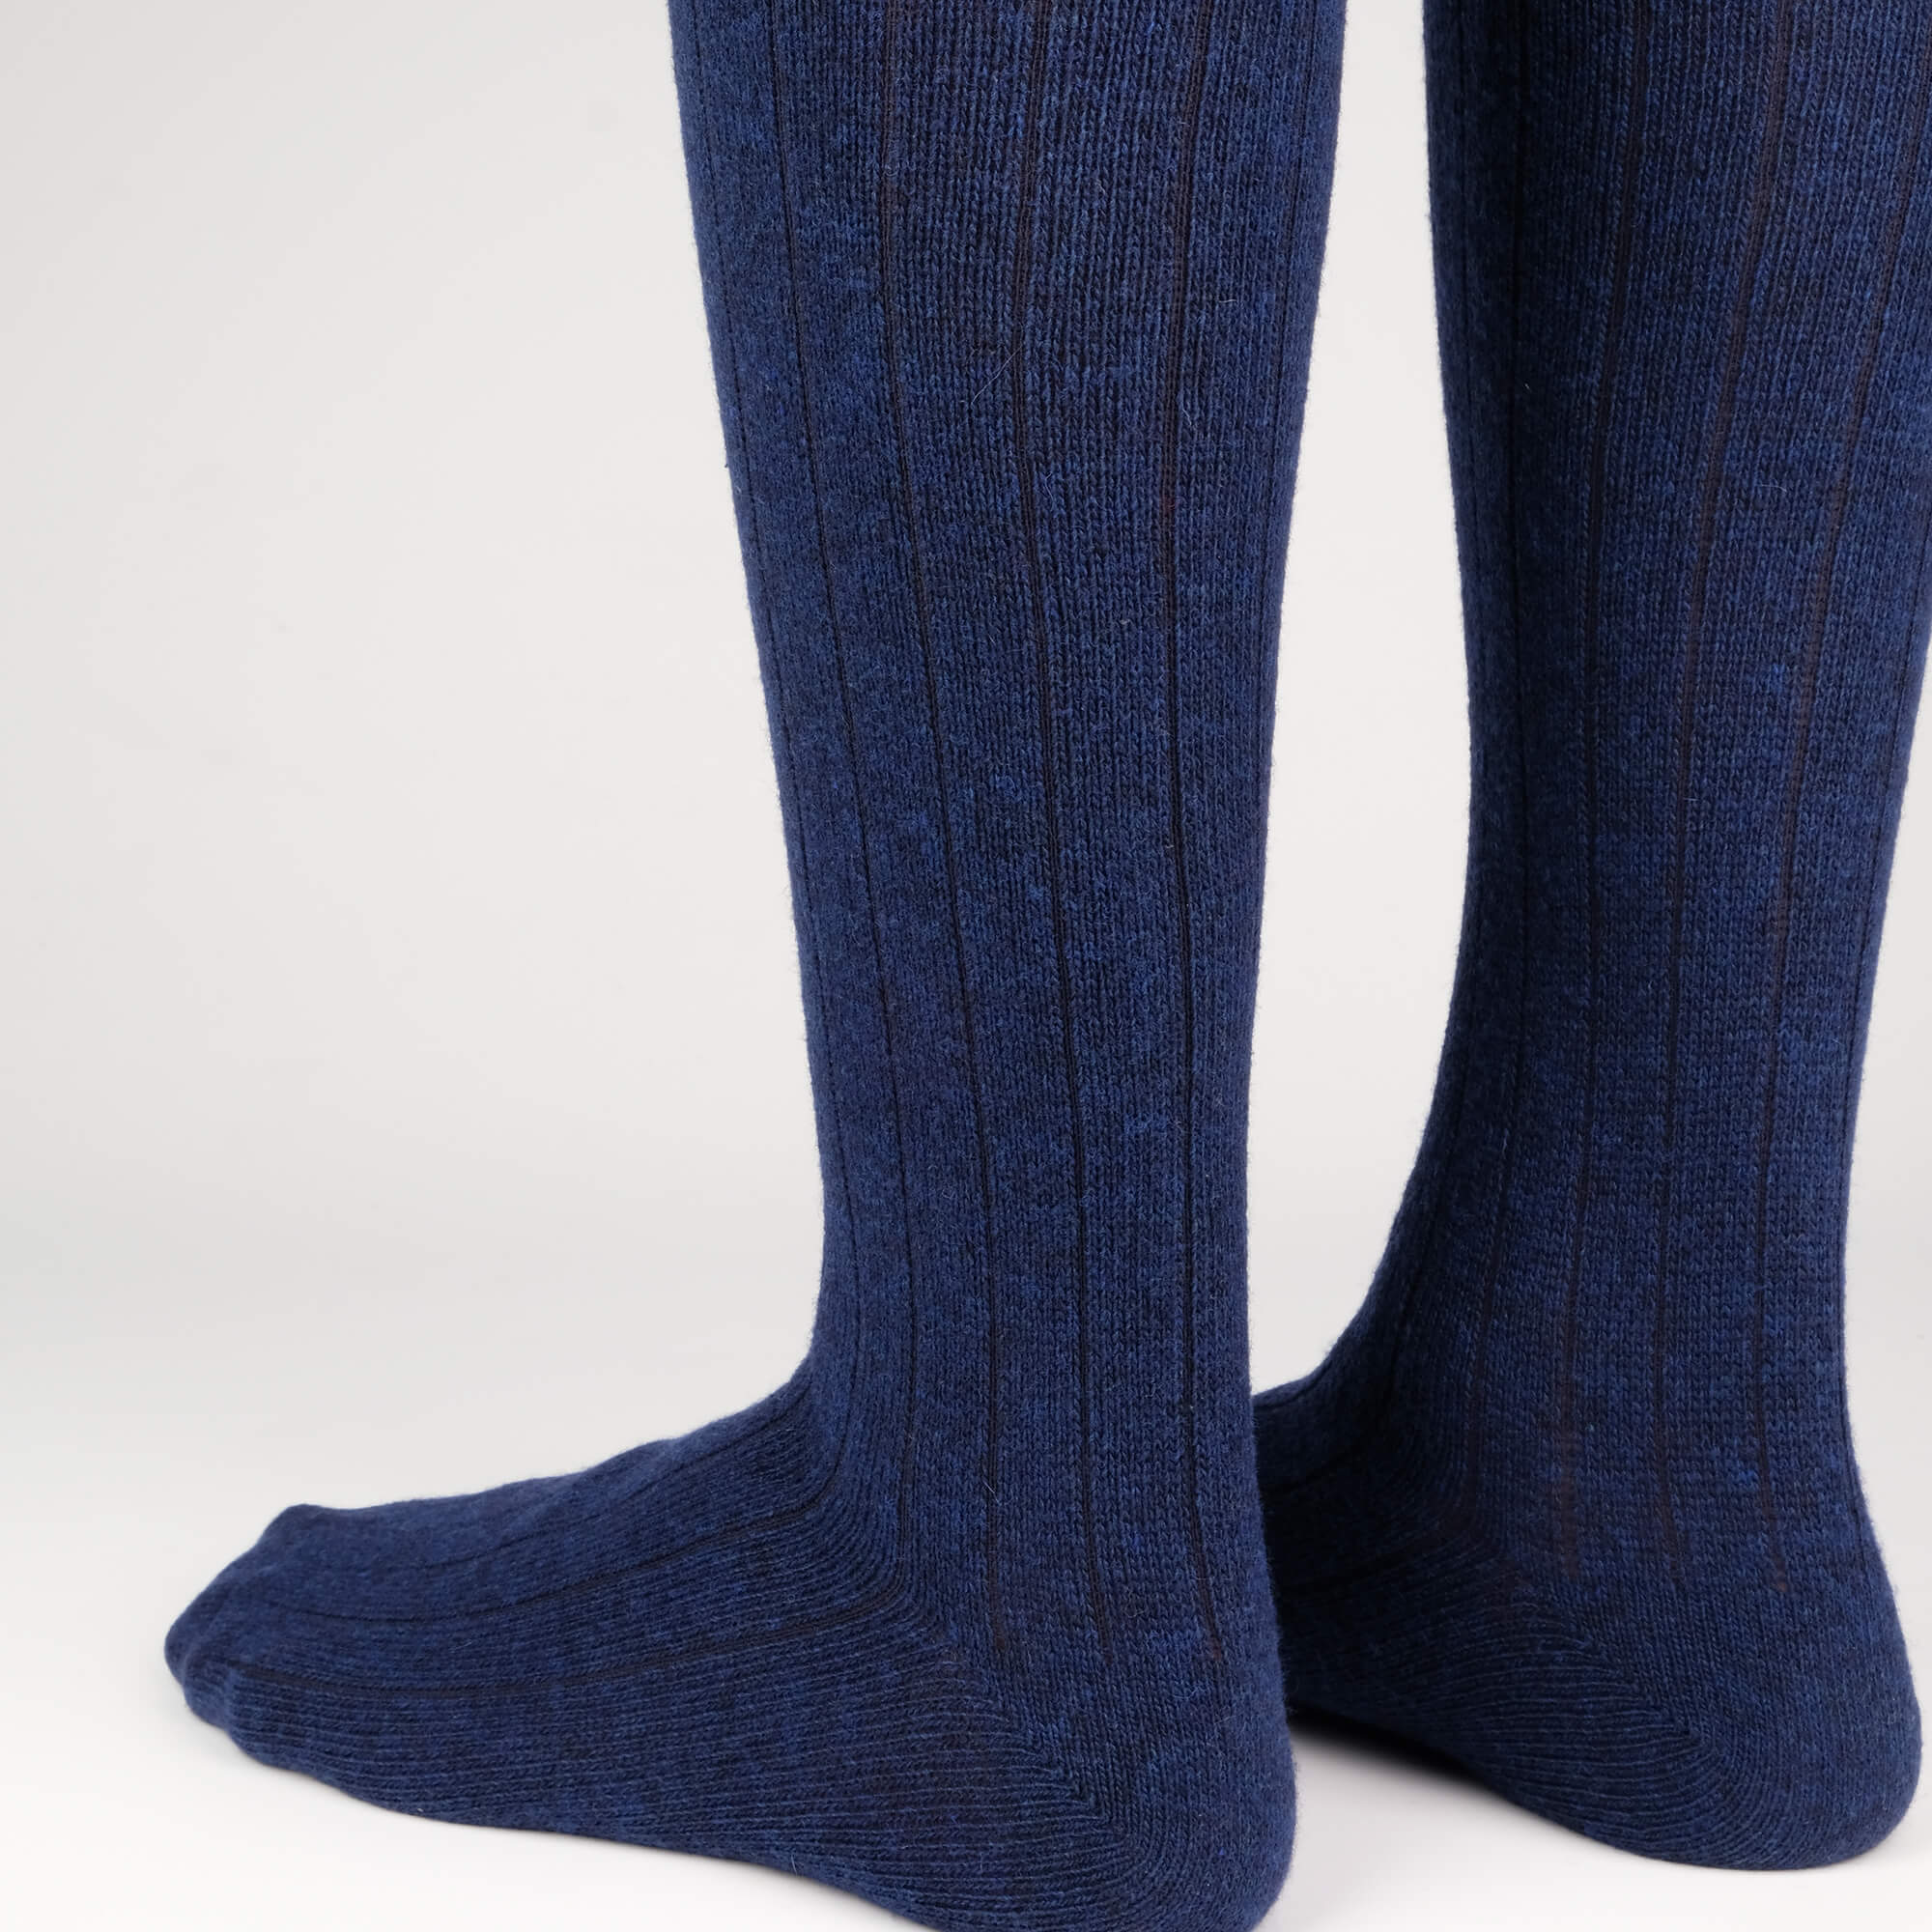 Mens Socks - Cashmere Knee High Ribbed Men's Socks - Dark Blue⎪Etiquette Clothiers